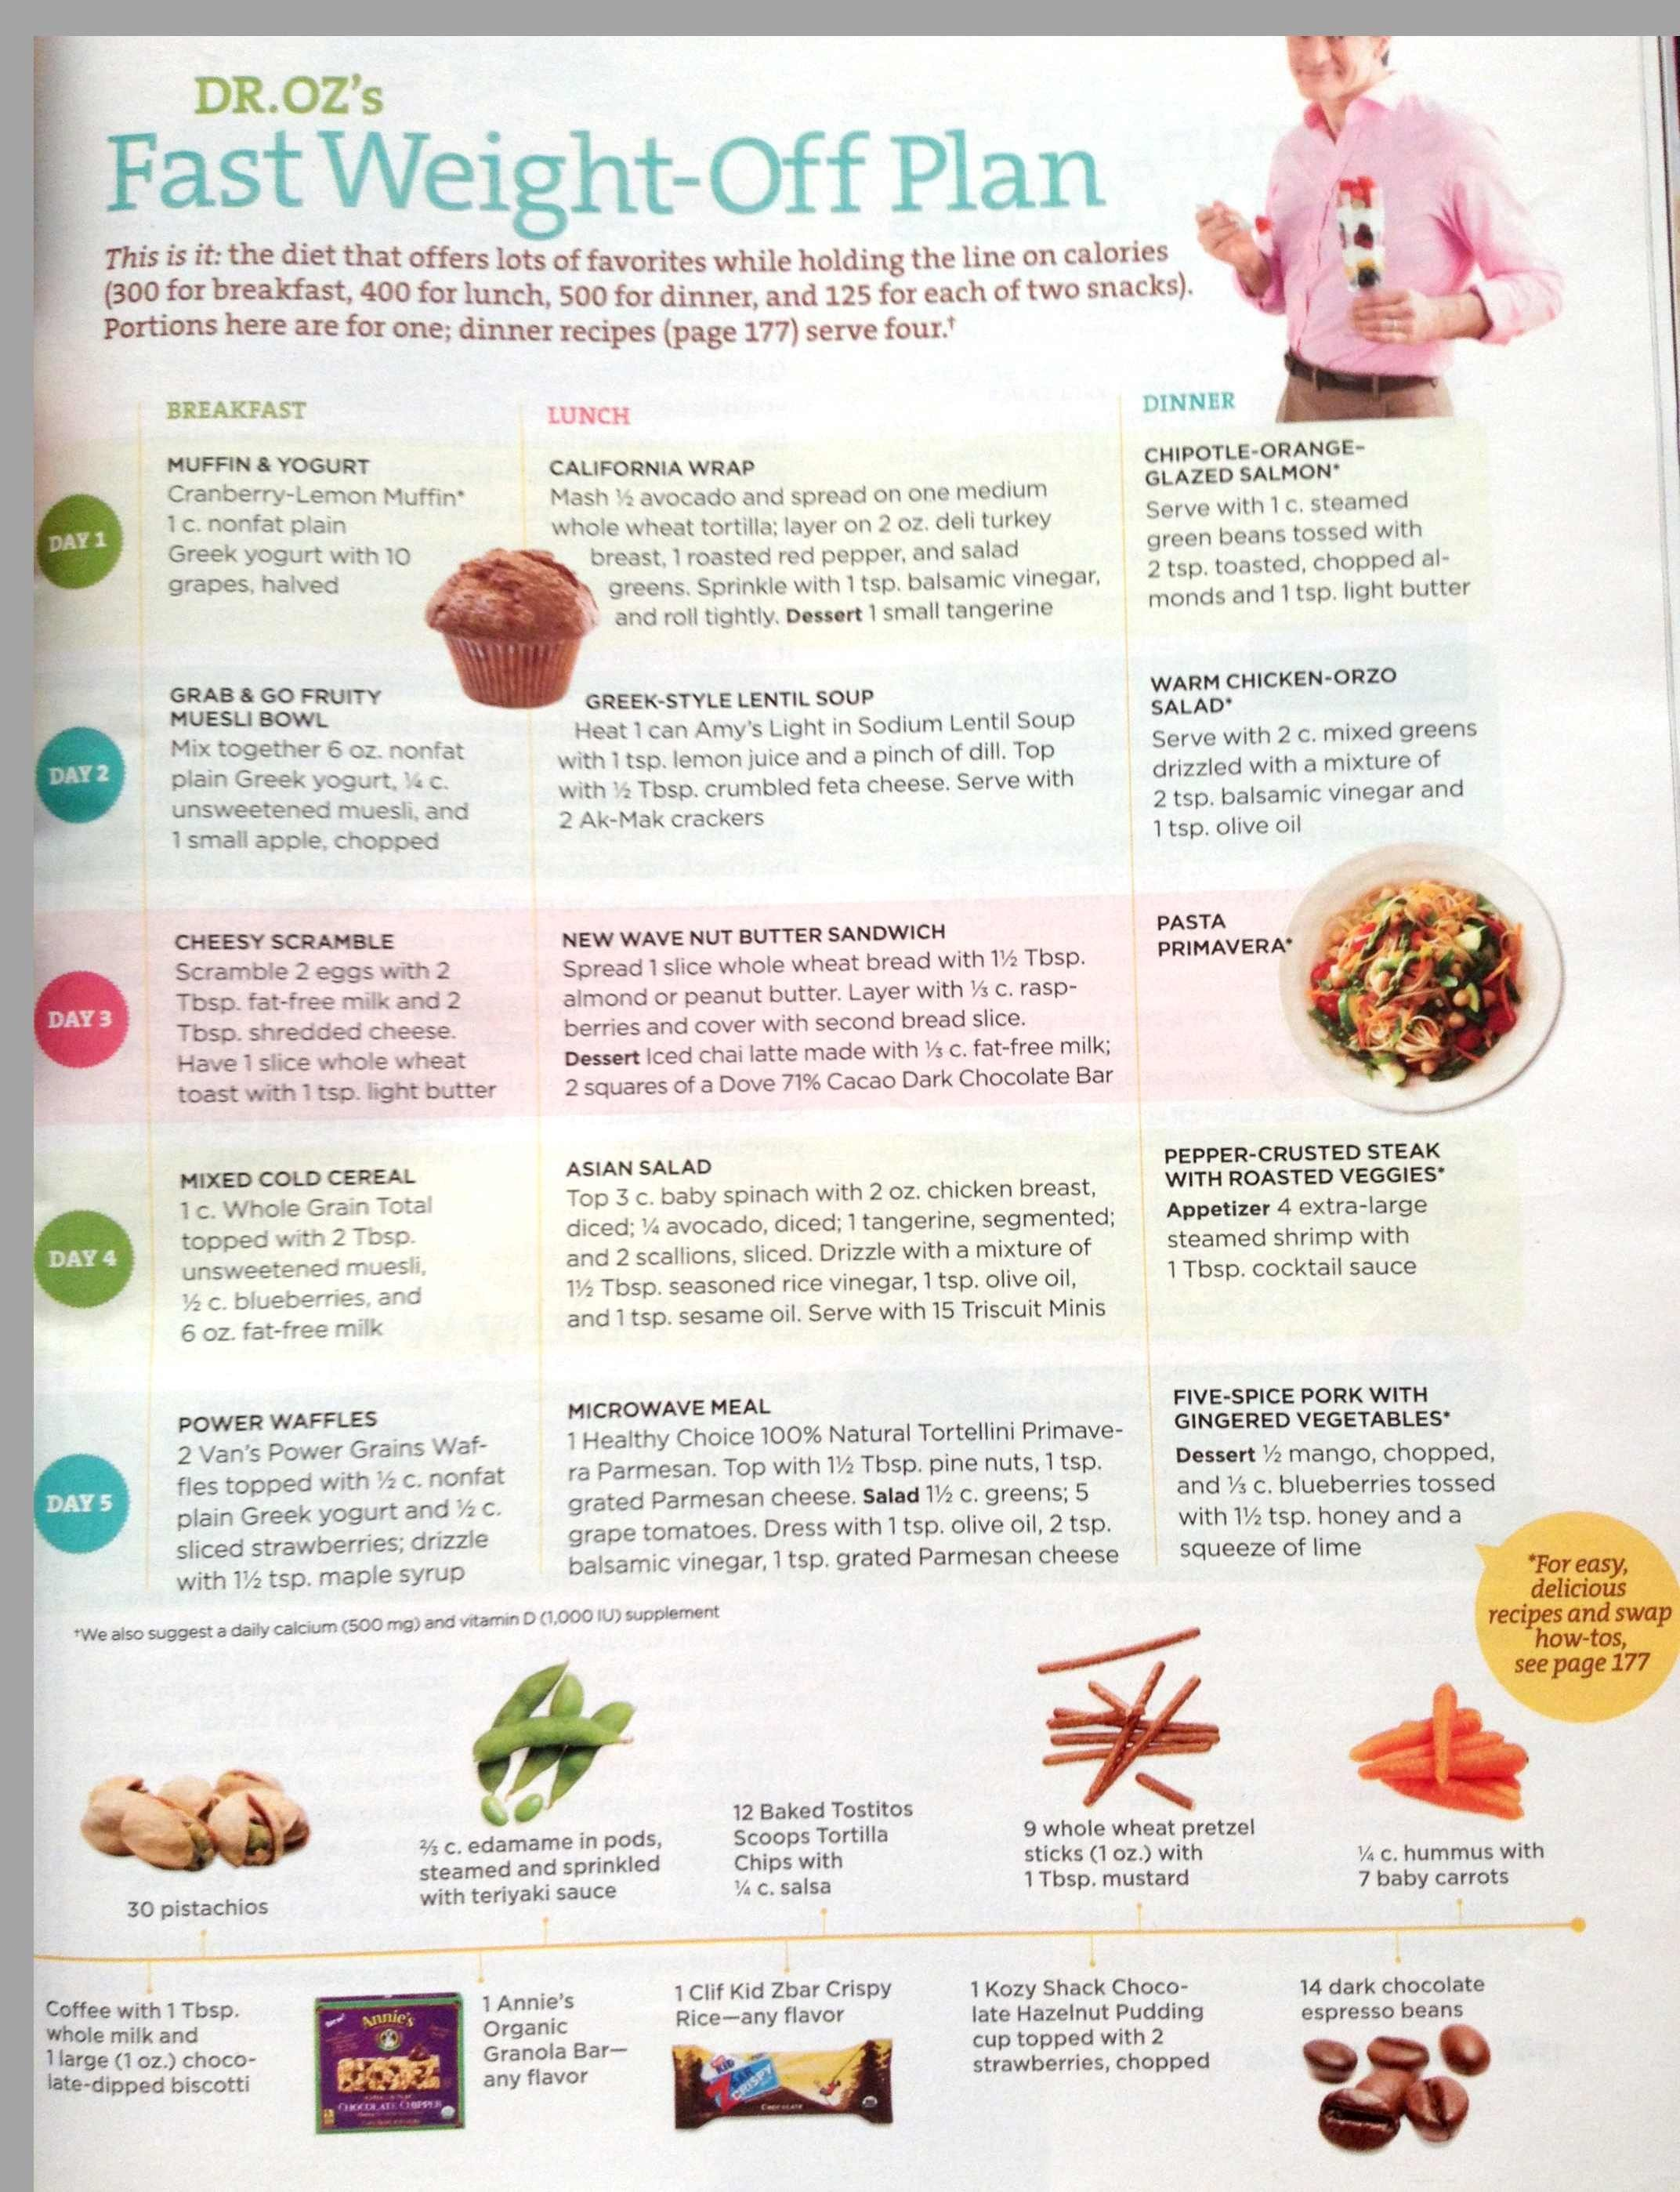 Dr. Oz's Fast Weight Off Plan   *Good Housekeeping Magazine, April 2012